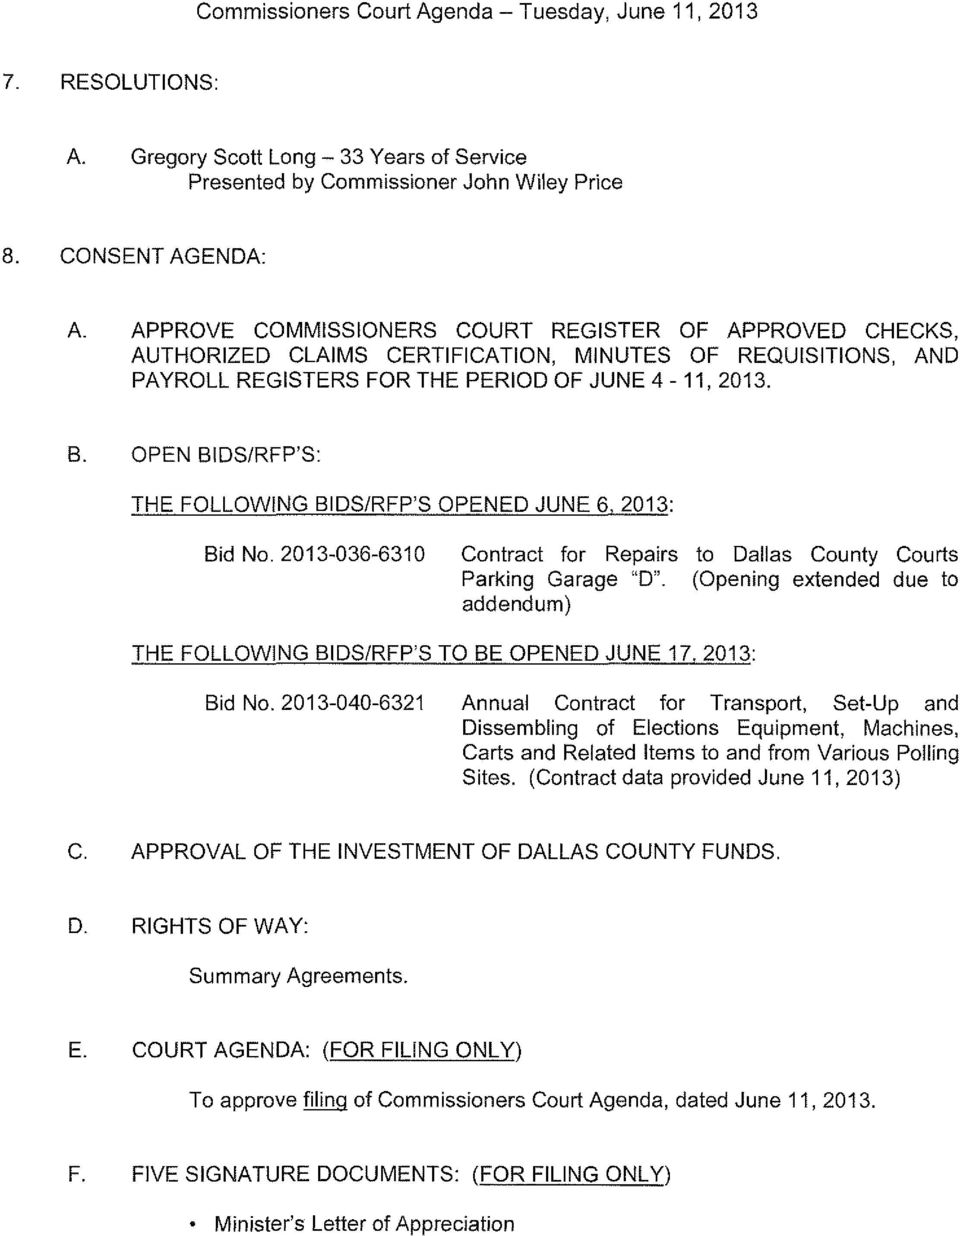 "OPEN BIDS/RFP'S: THE FOLLOWING BIDS/RFP'S OPENED JUNE 6, 2013: Bid No. 2013-036-6310 Contract for Repairs to Dallas County Courts Parking Garage ""0""."